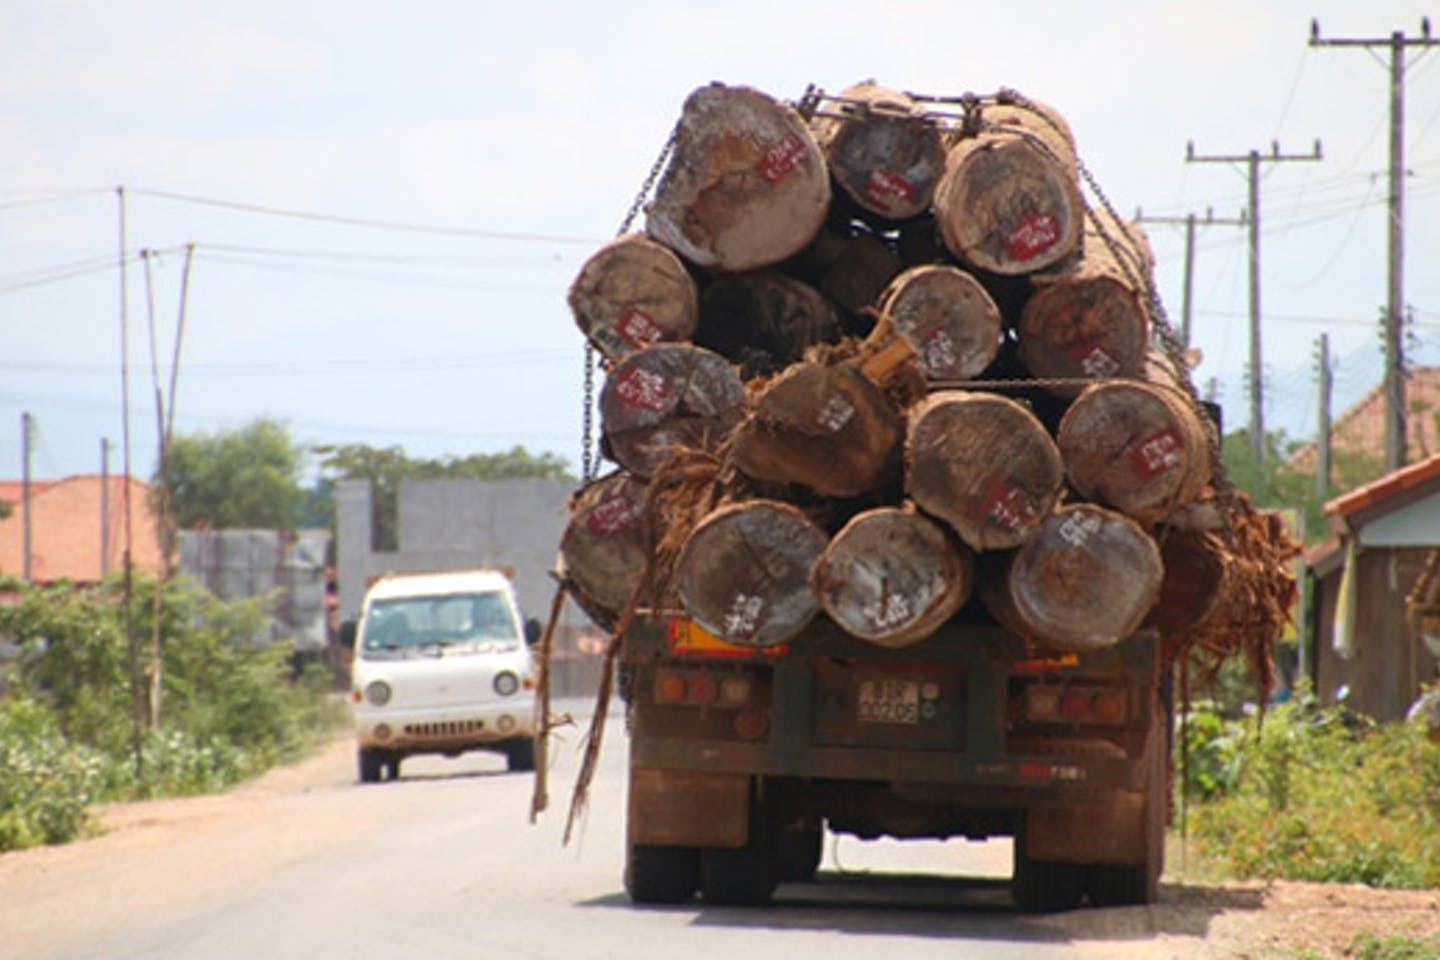 Timber being hauled in Laos